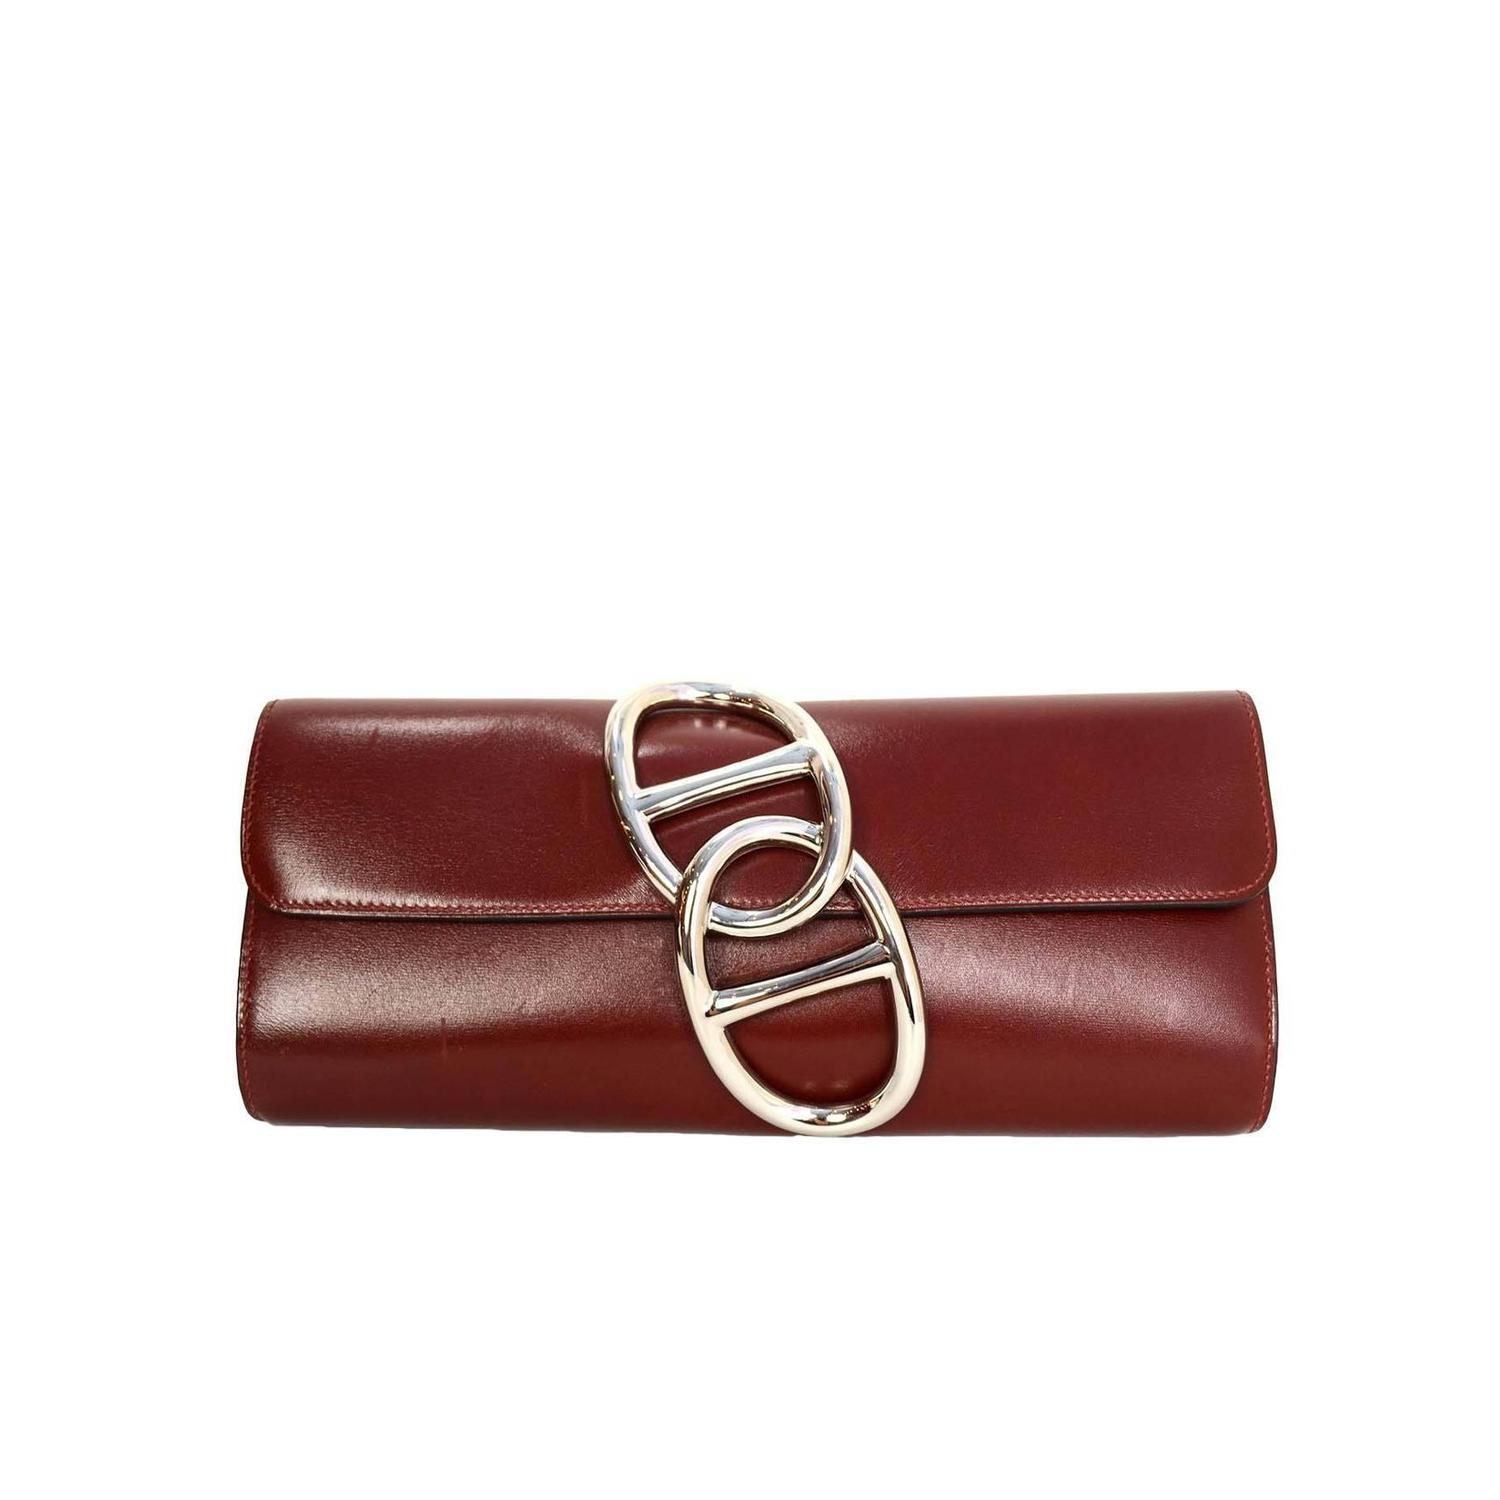 Vintage Herm��s Clutches - 145 For Sale at 1stdibs - Page 2